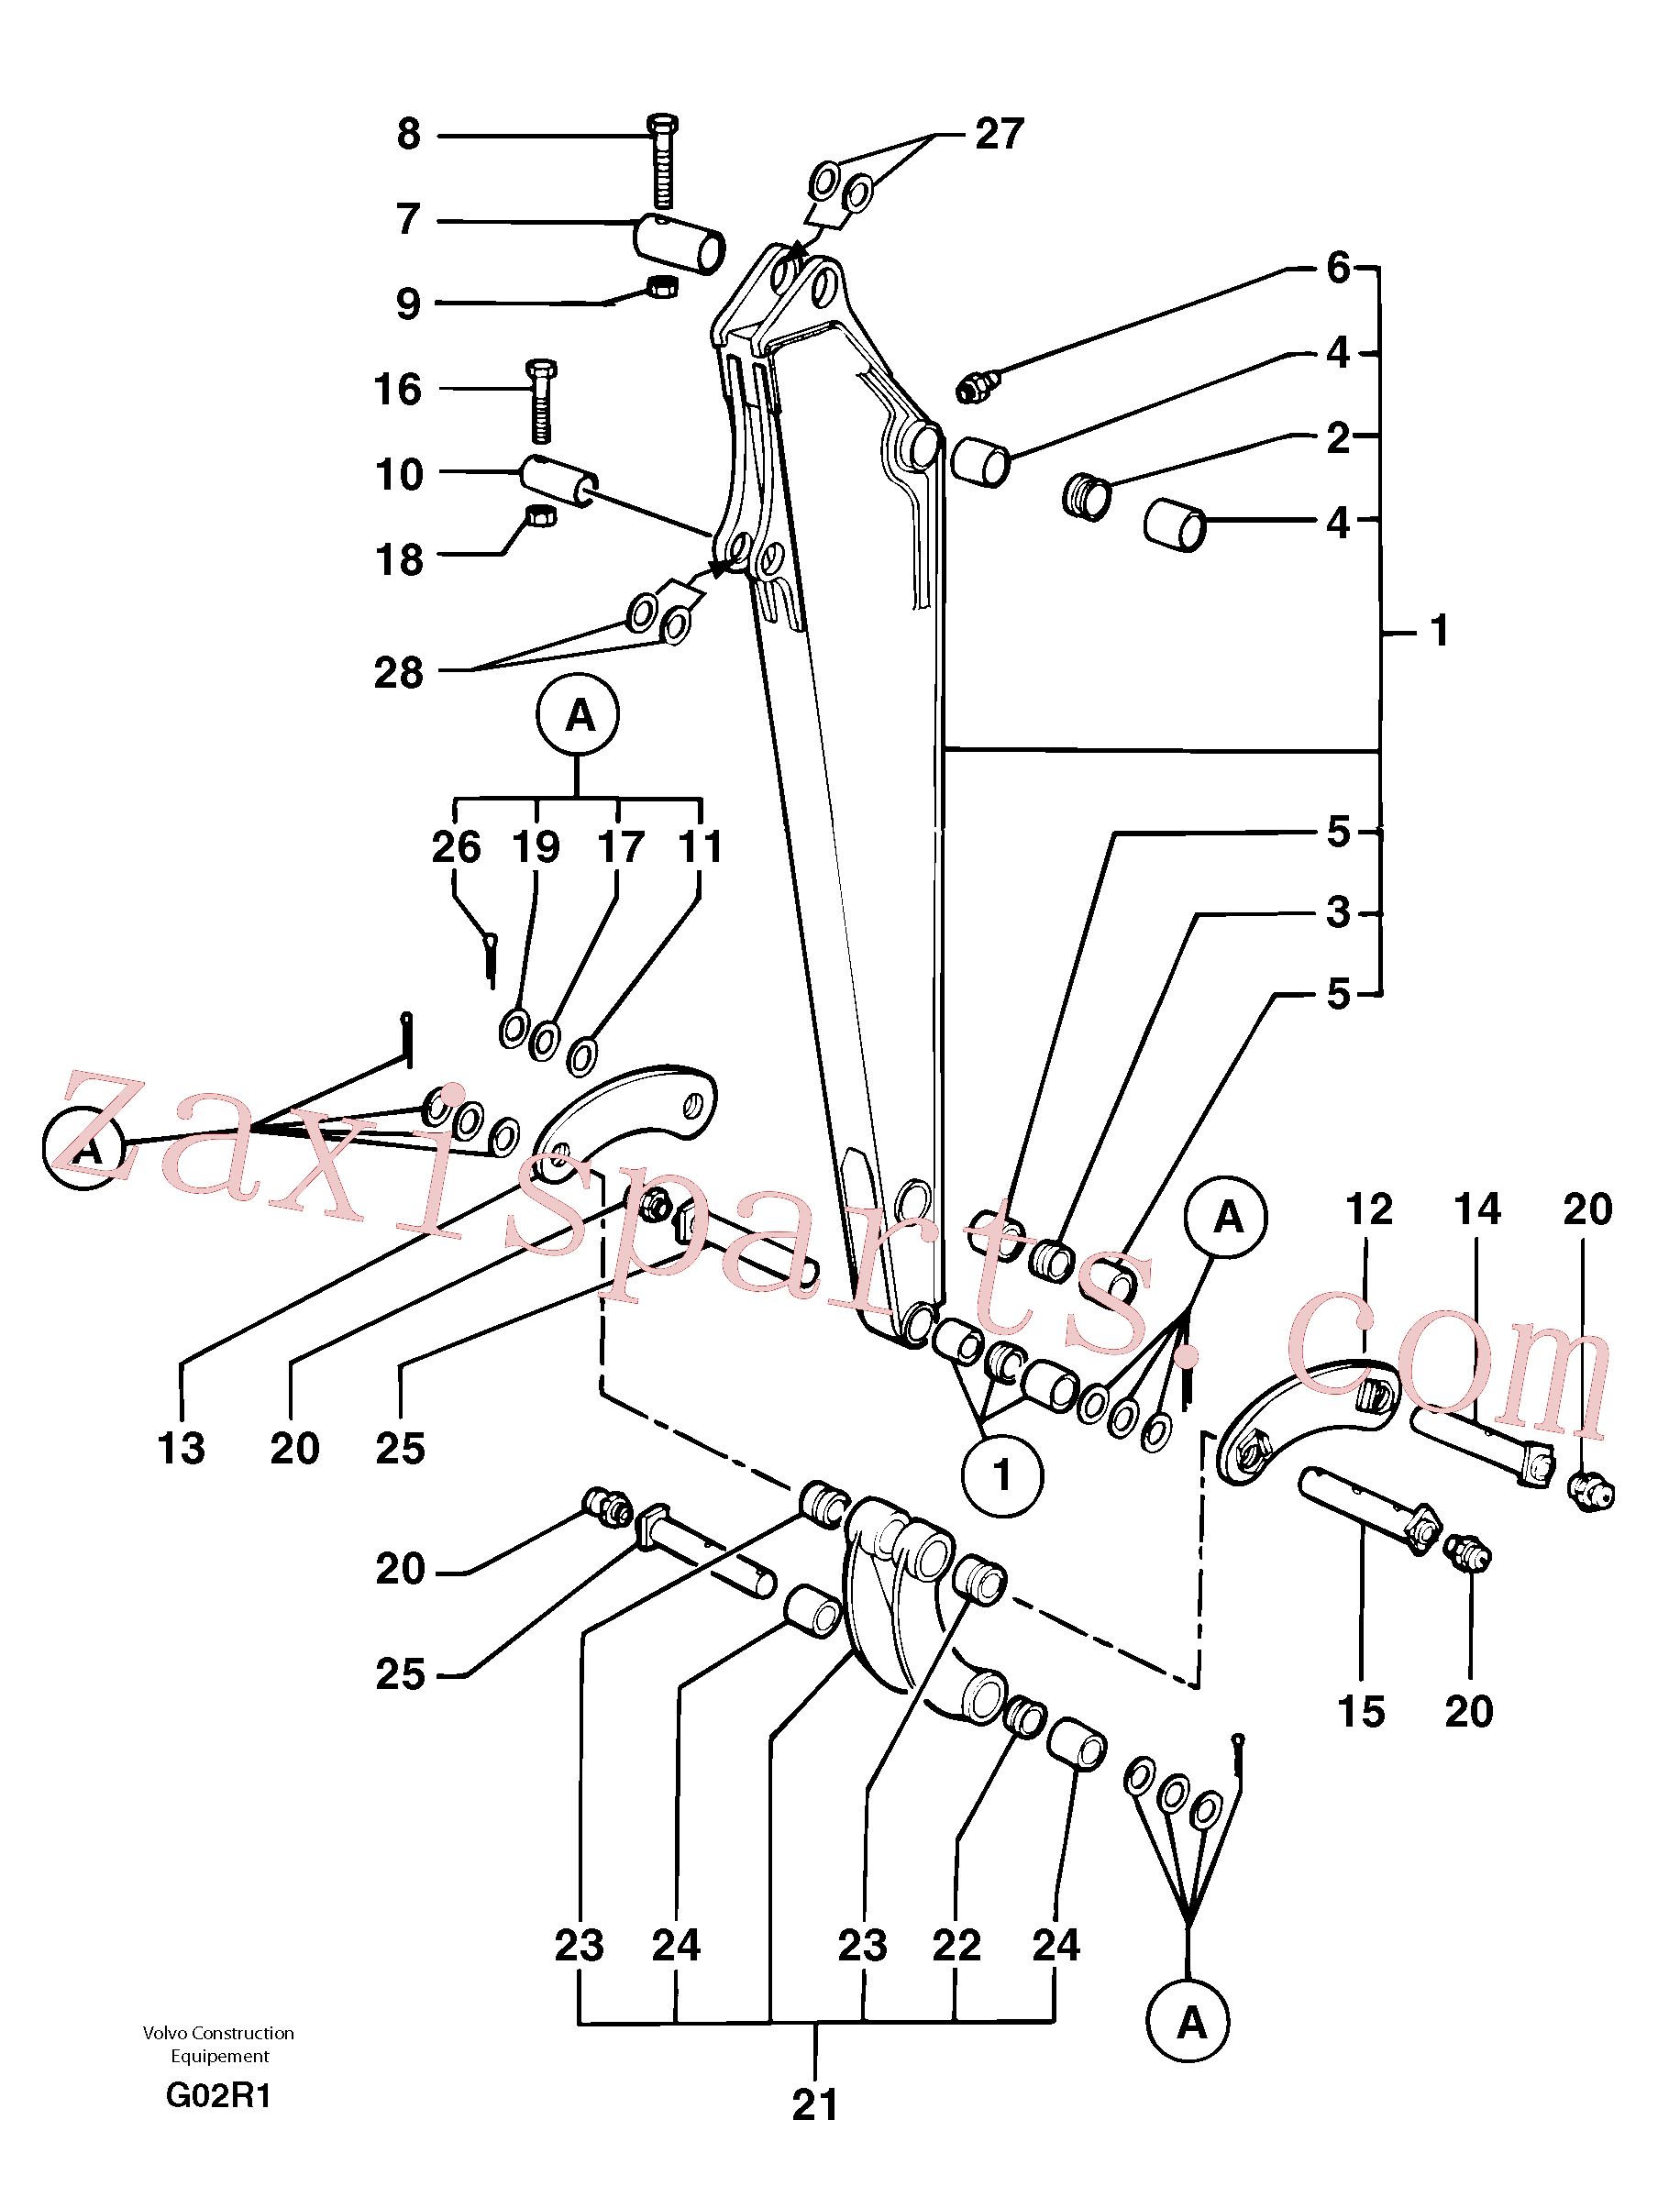 PJ5460189 for Volvo Dipper arm(G02R1 assembly)